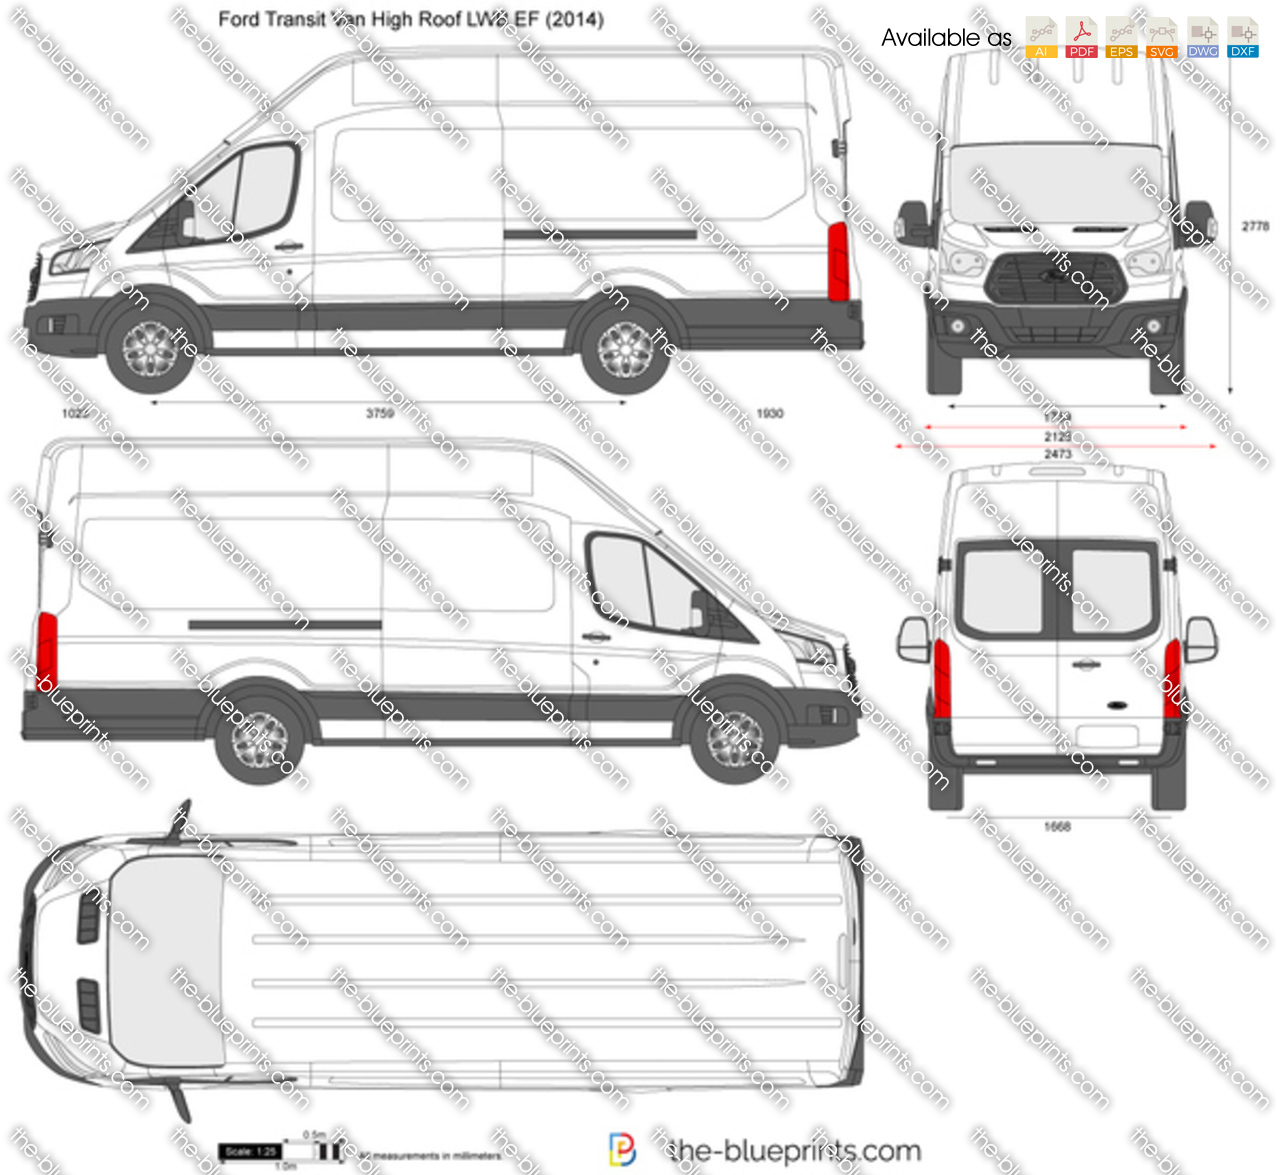 Ford Transit 2017 Wymiary >> Ford Transit Van High Roof LWB EF vector drawing